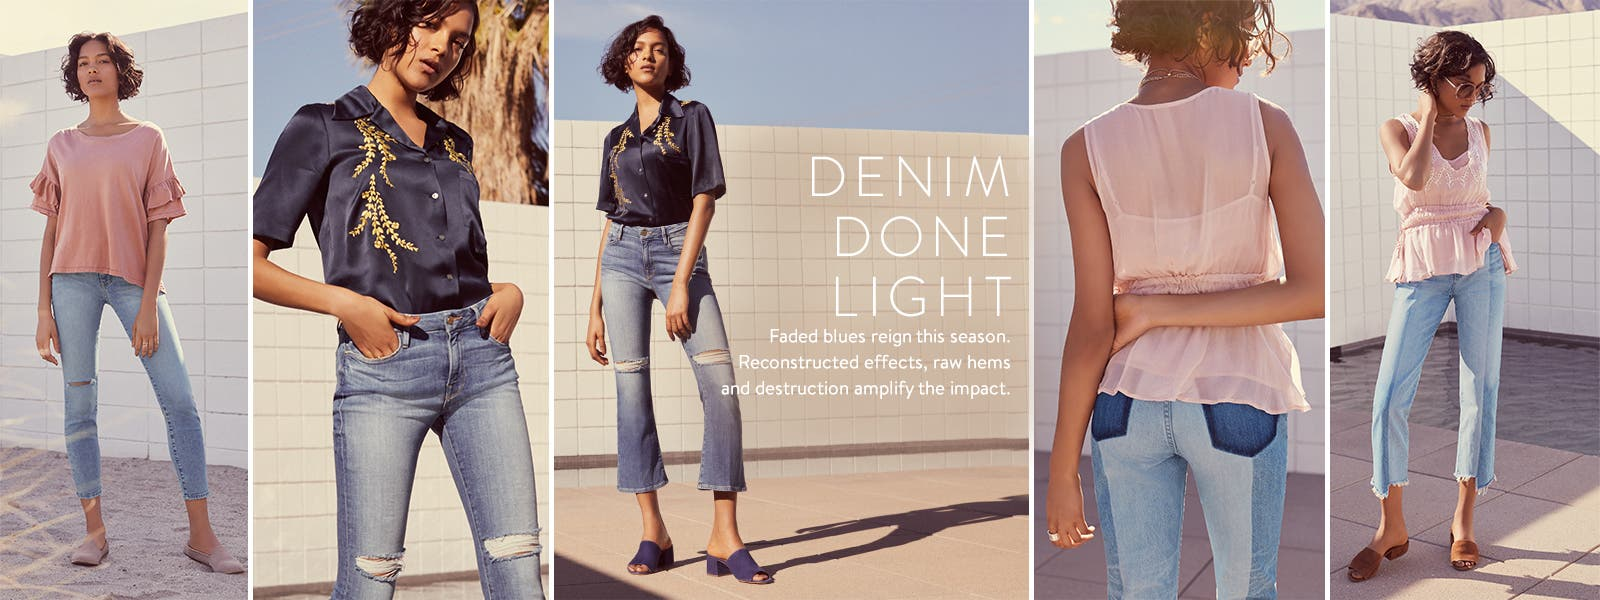 Denim done light.